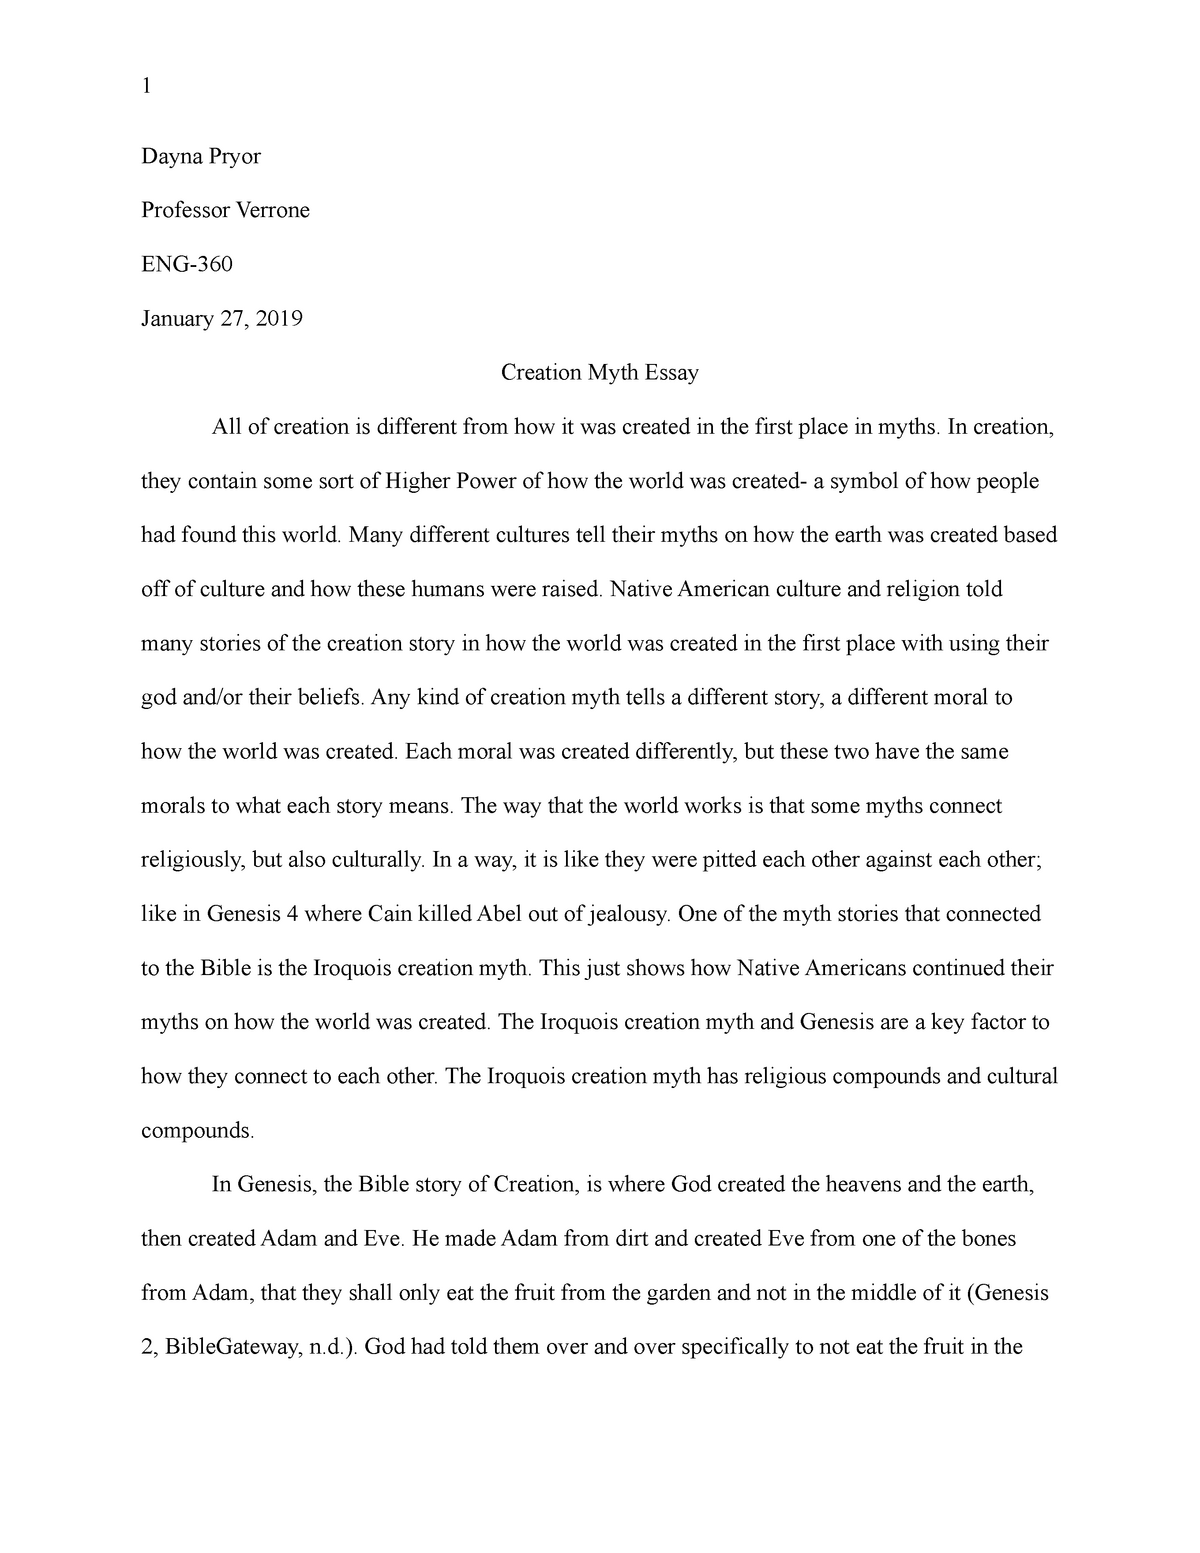 creation myth essay   grade a   eng  american encounter